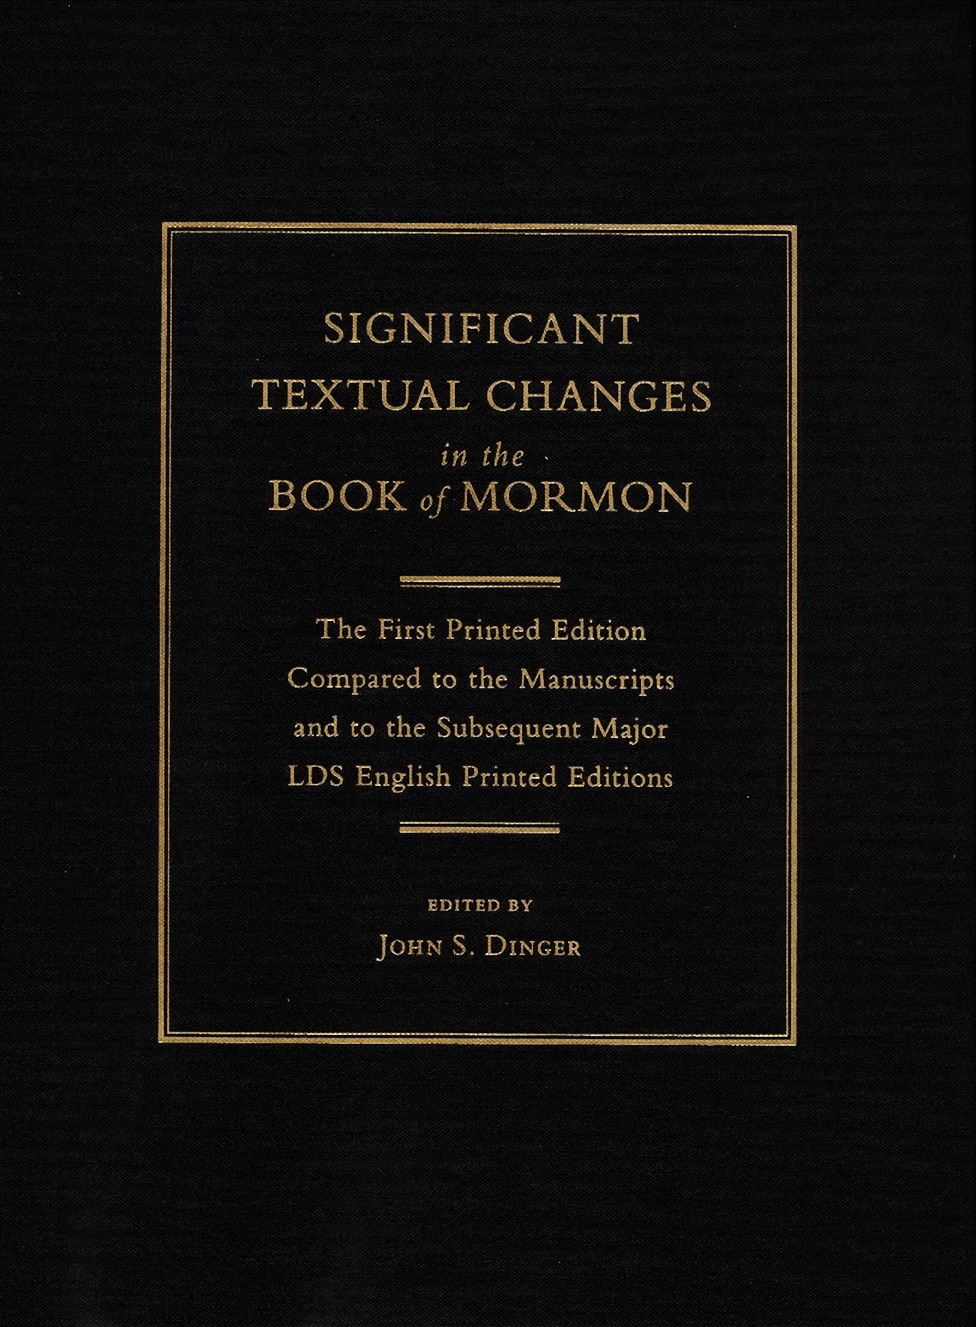 Significant Textual Changes in the Book of Mormon  The First Printed Edition Compared to the Manuscripts and to the Subsequent Major LDS English Printed Editions, Dinger, John S.